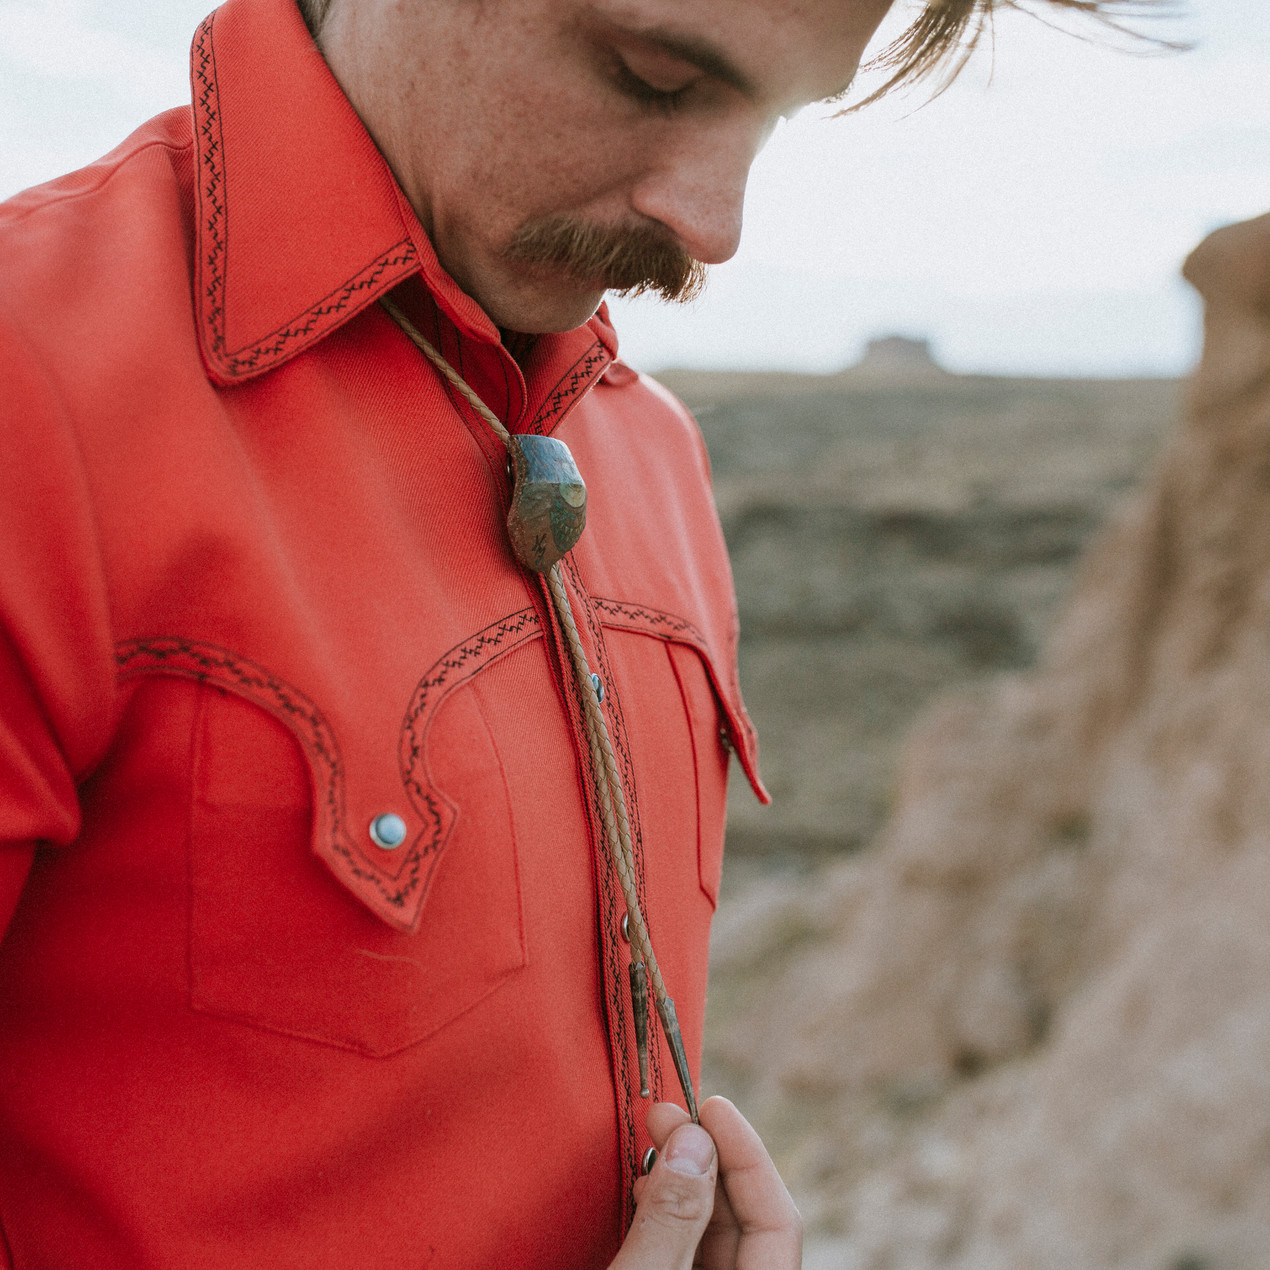 Groom accessorizes with a bolo tie for his elopement wedding.